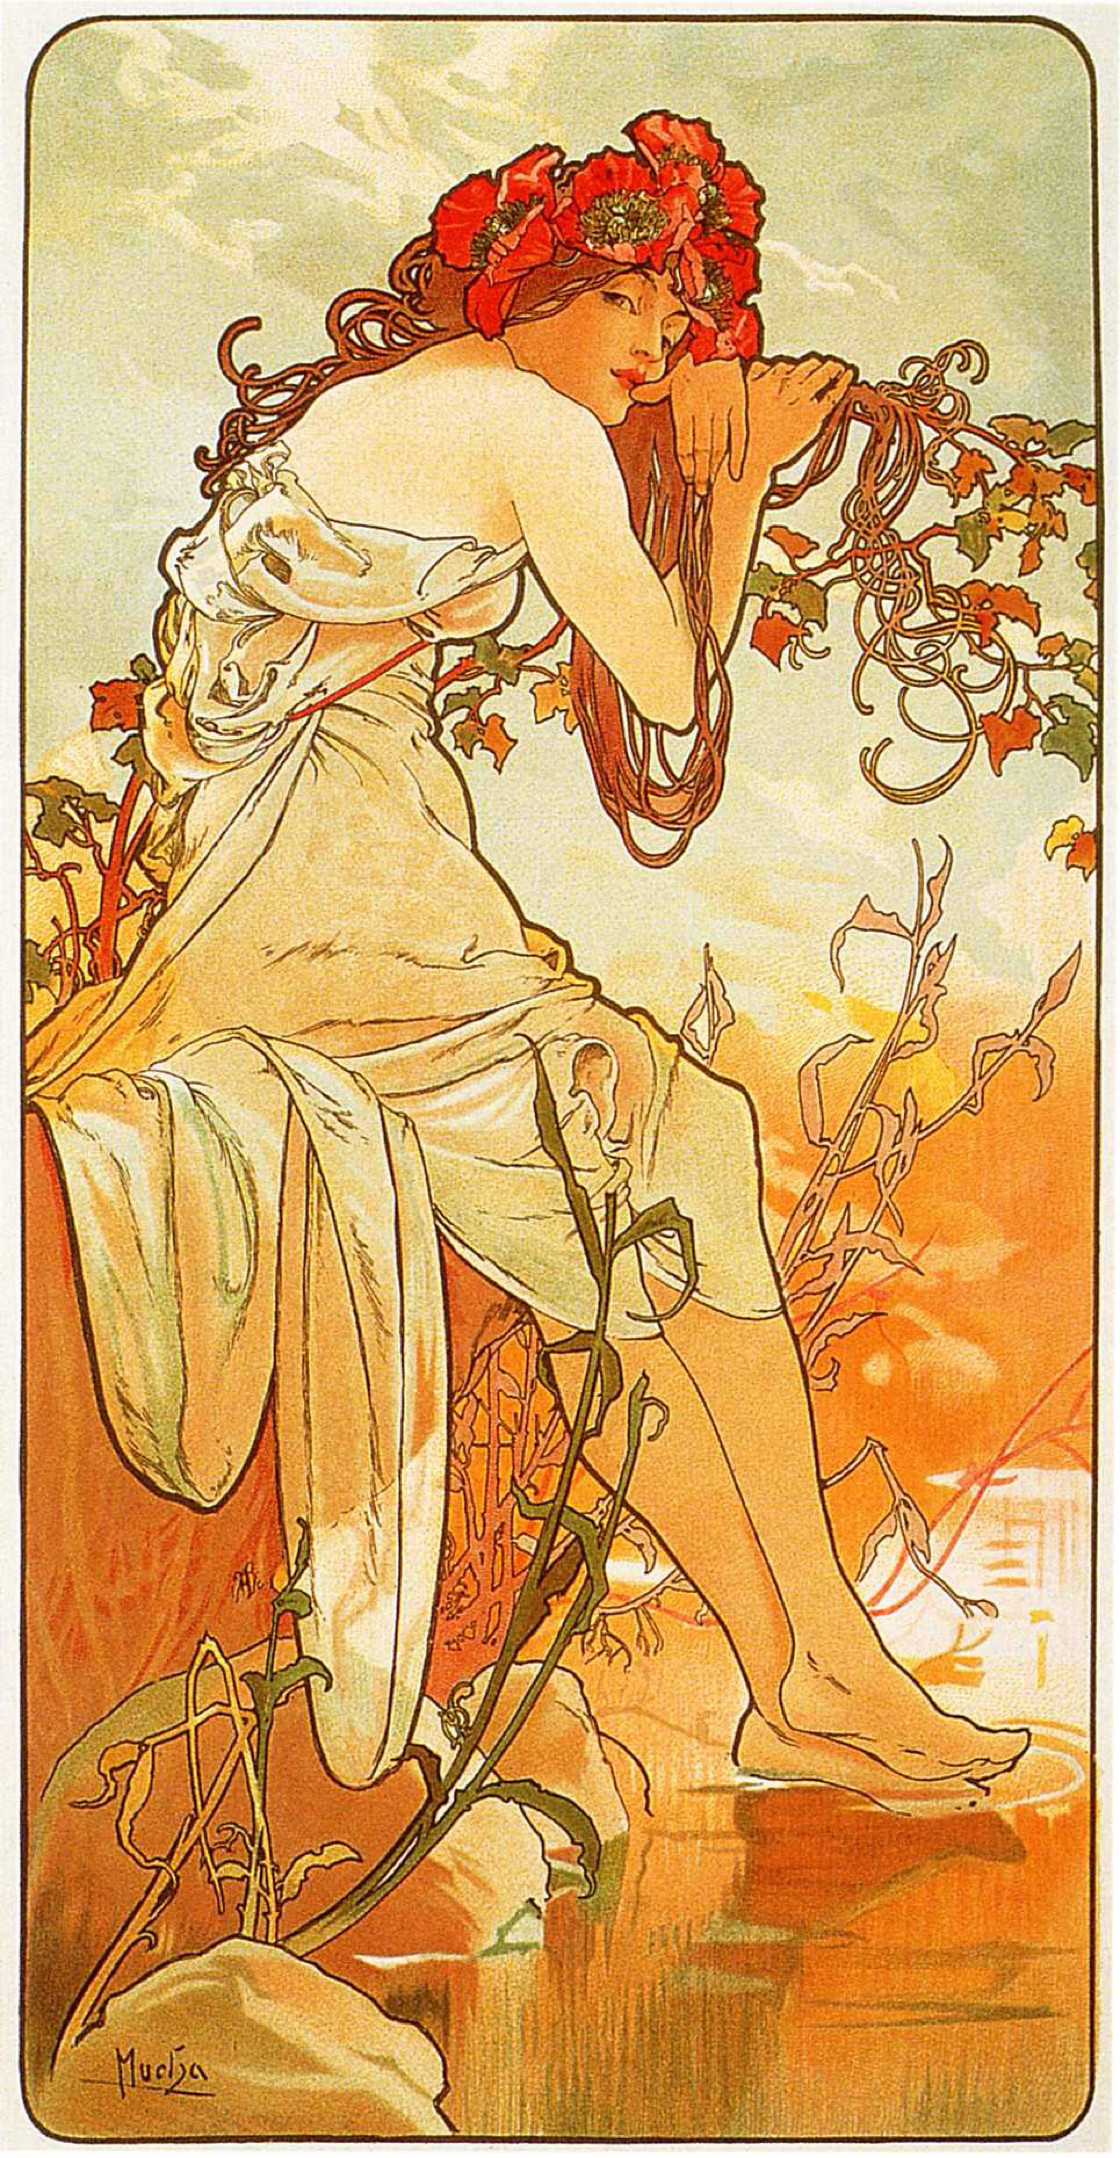 1120x2158 The Seasons Summer - Alphonse Mucha Wallpaper Image